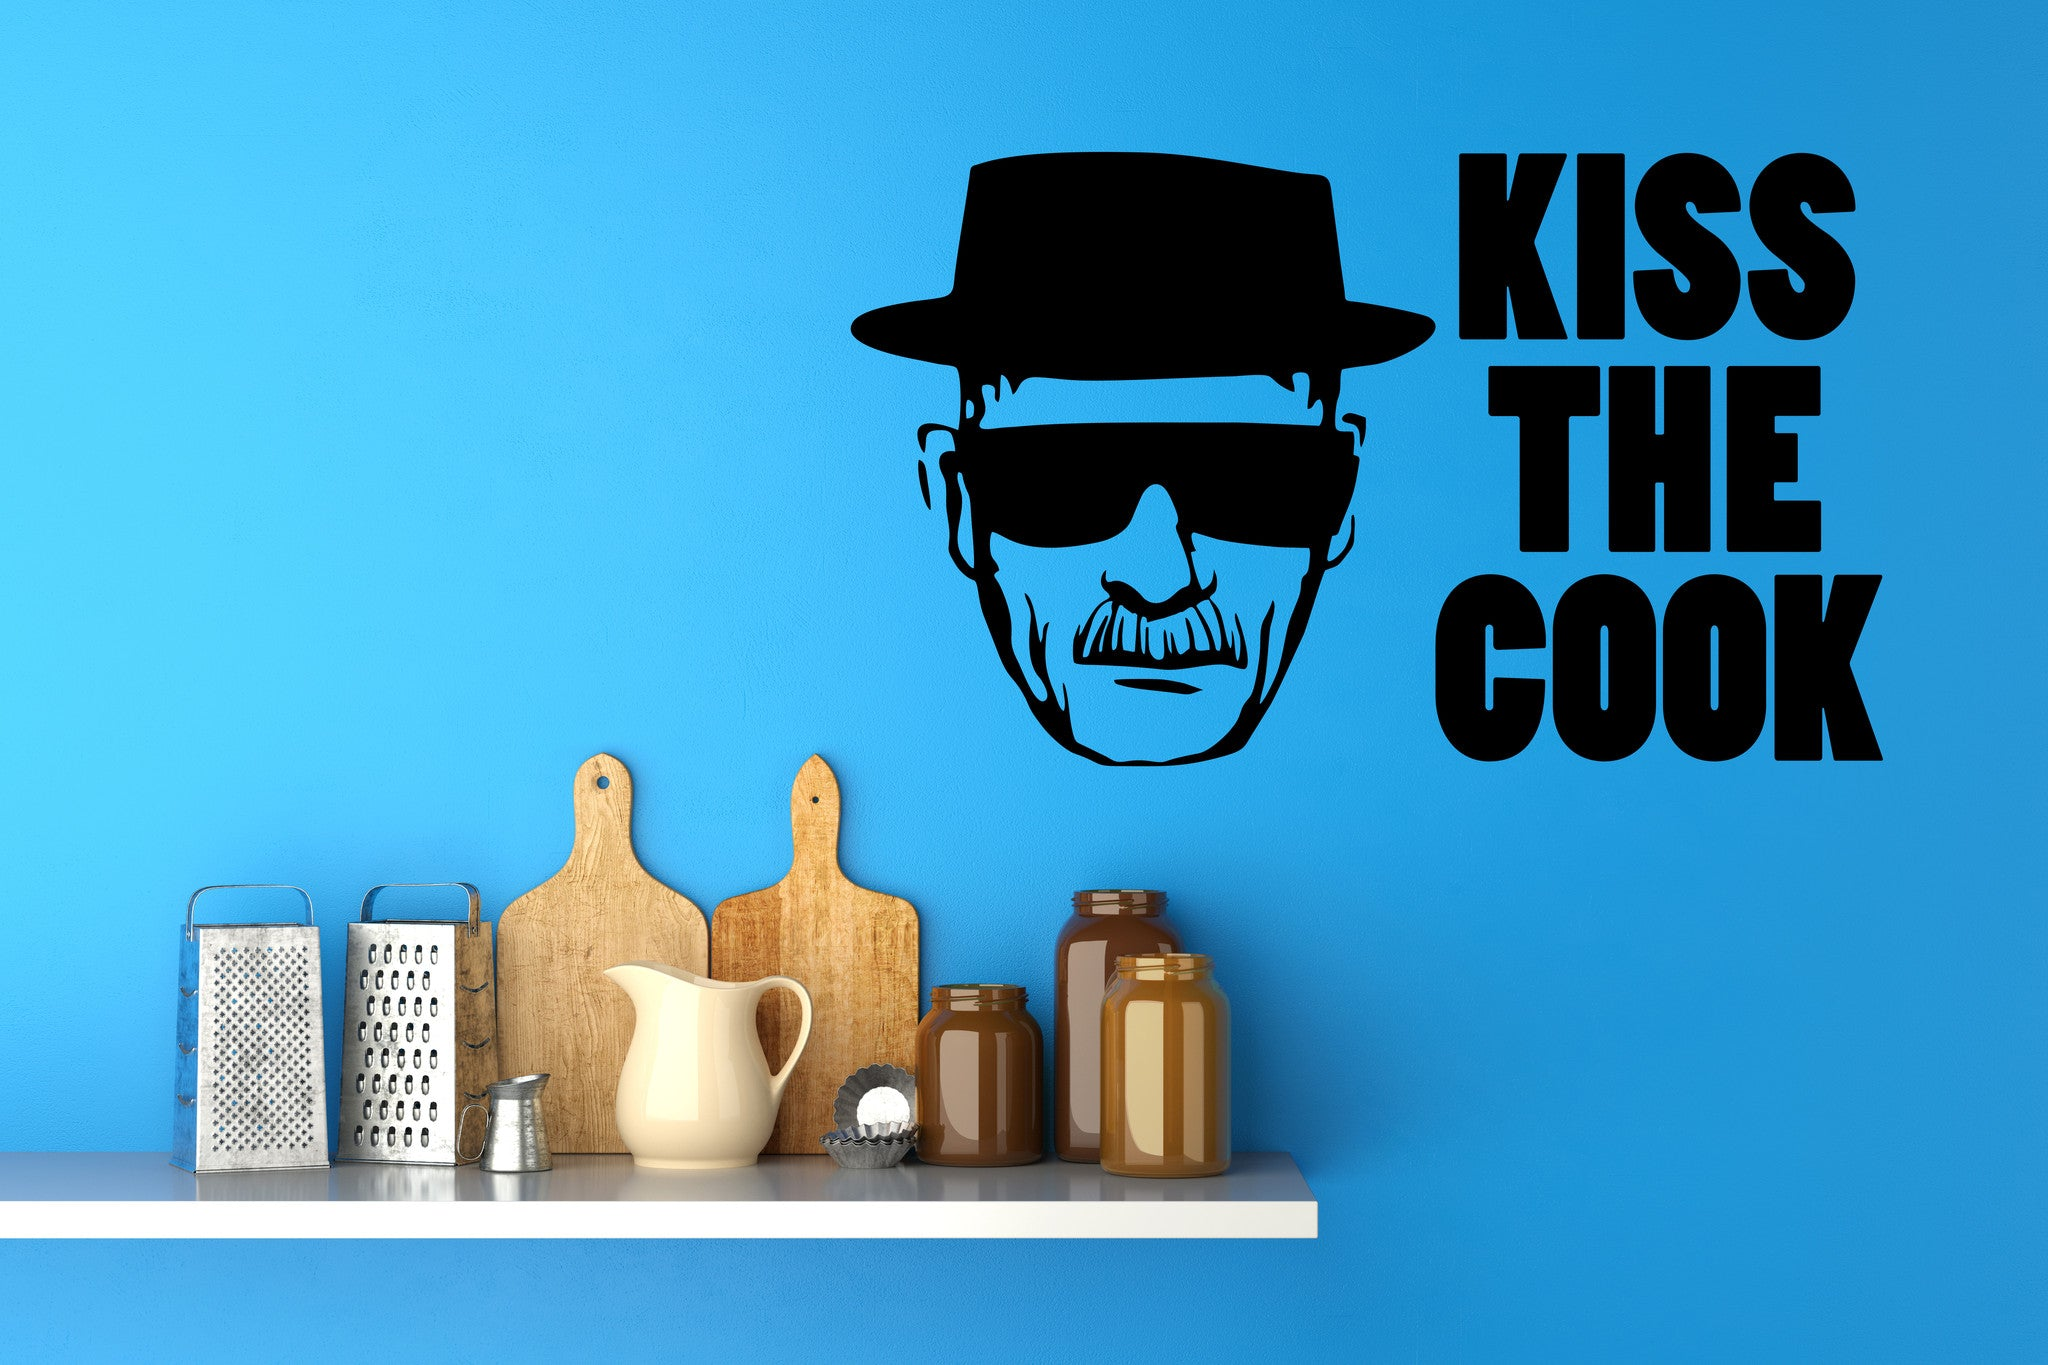 Kiss the Cook - Somhi